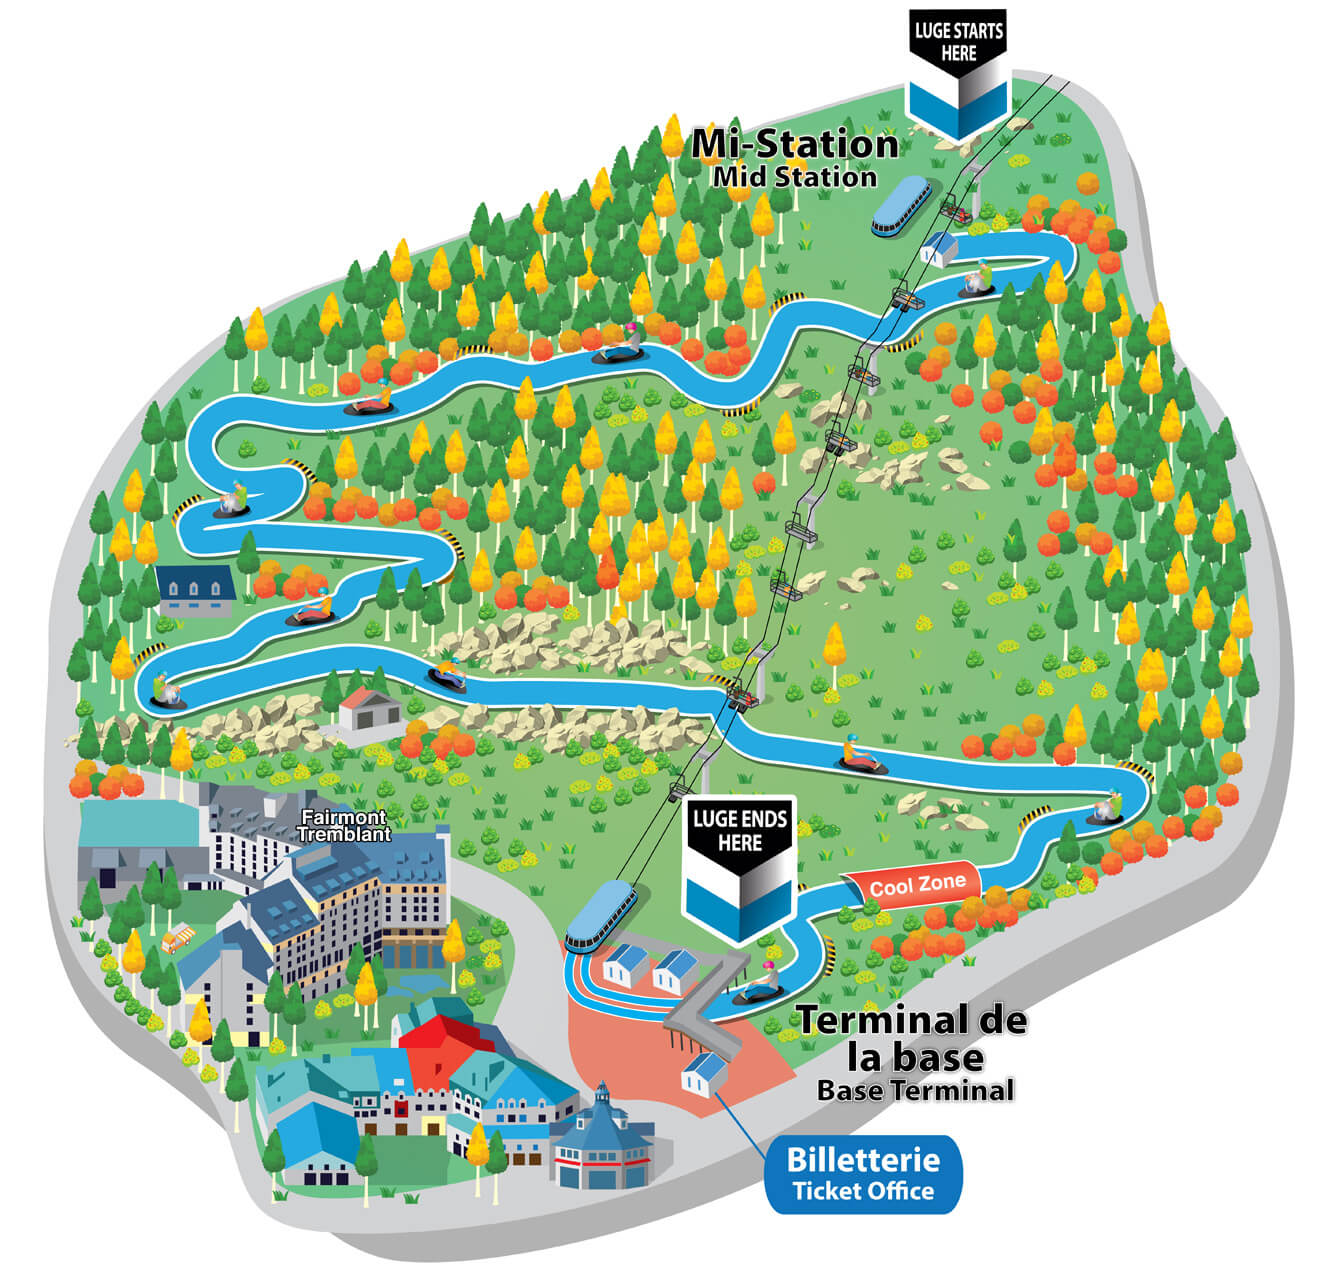 Skyline-Luge-Mont-Tremblant-site-map